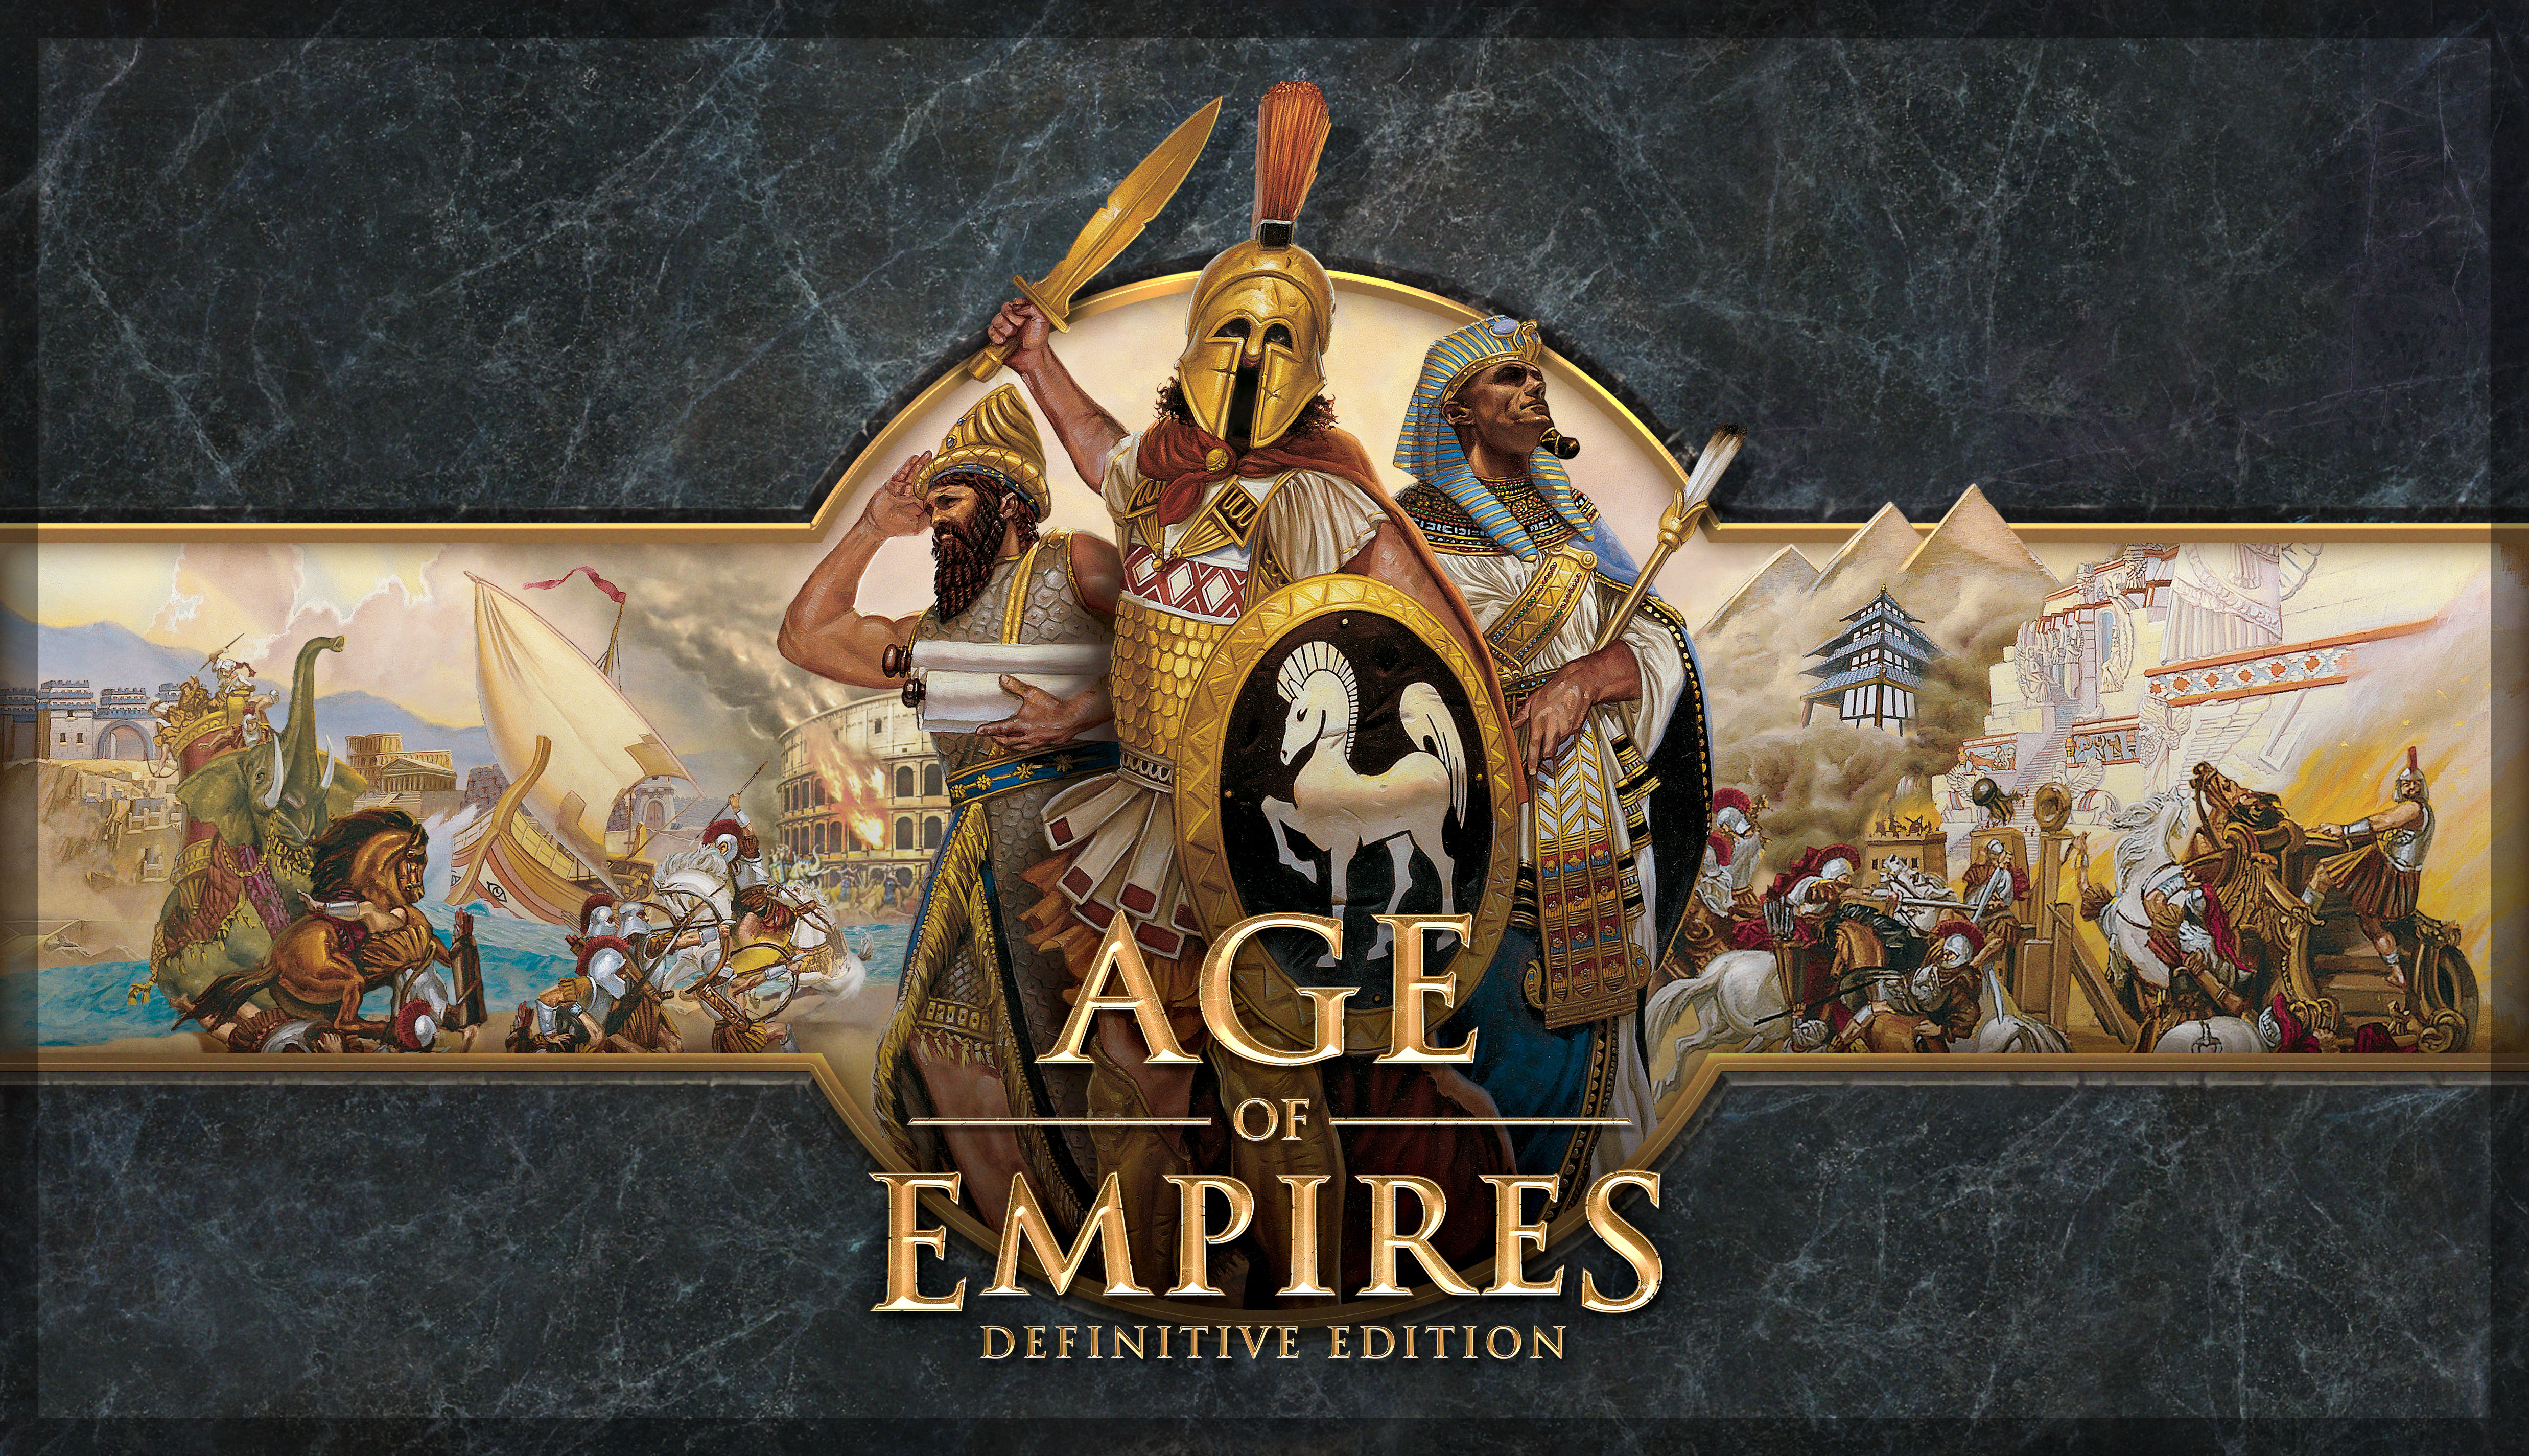 Age of Empires: Definitive Edition has been delayed to Spring 2018 screenshot